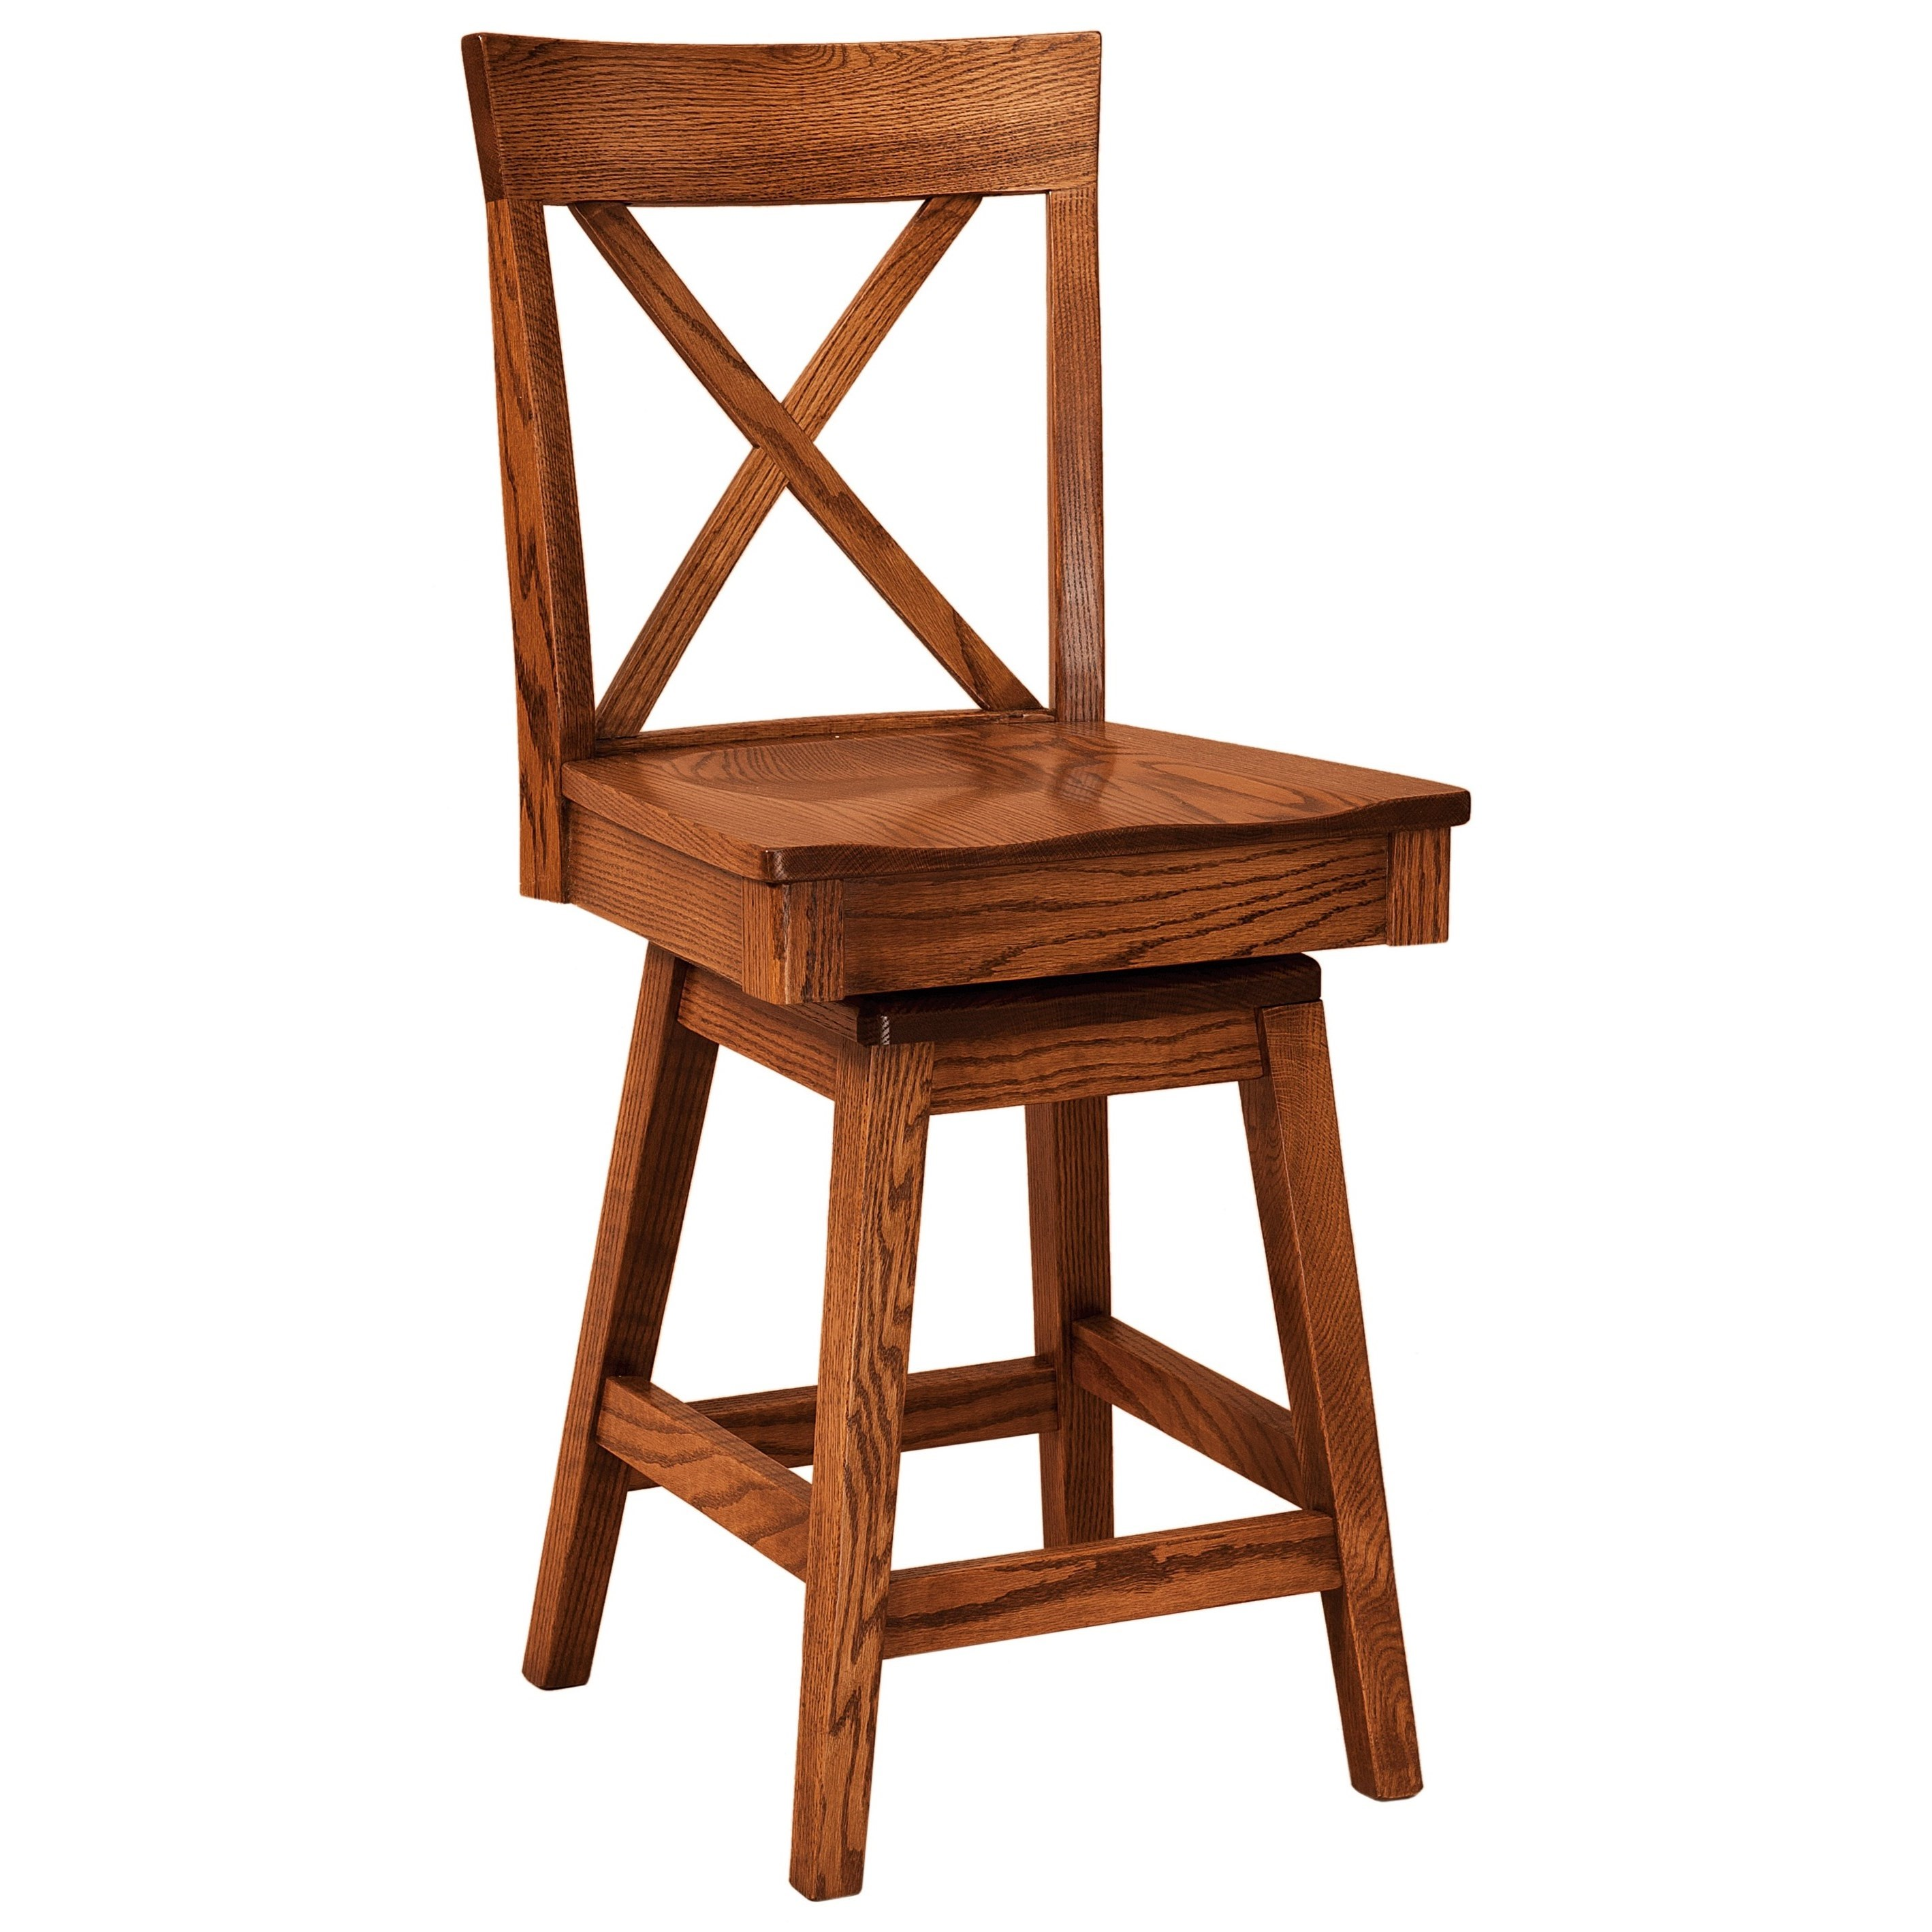 Frontier Swivel Bar Stool - Leather Seat by F&N Woodworking at Mueller Furniture